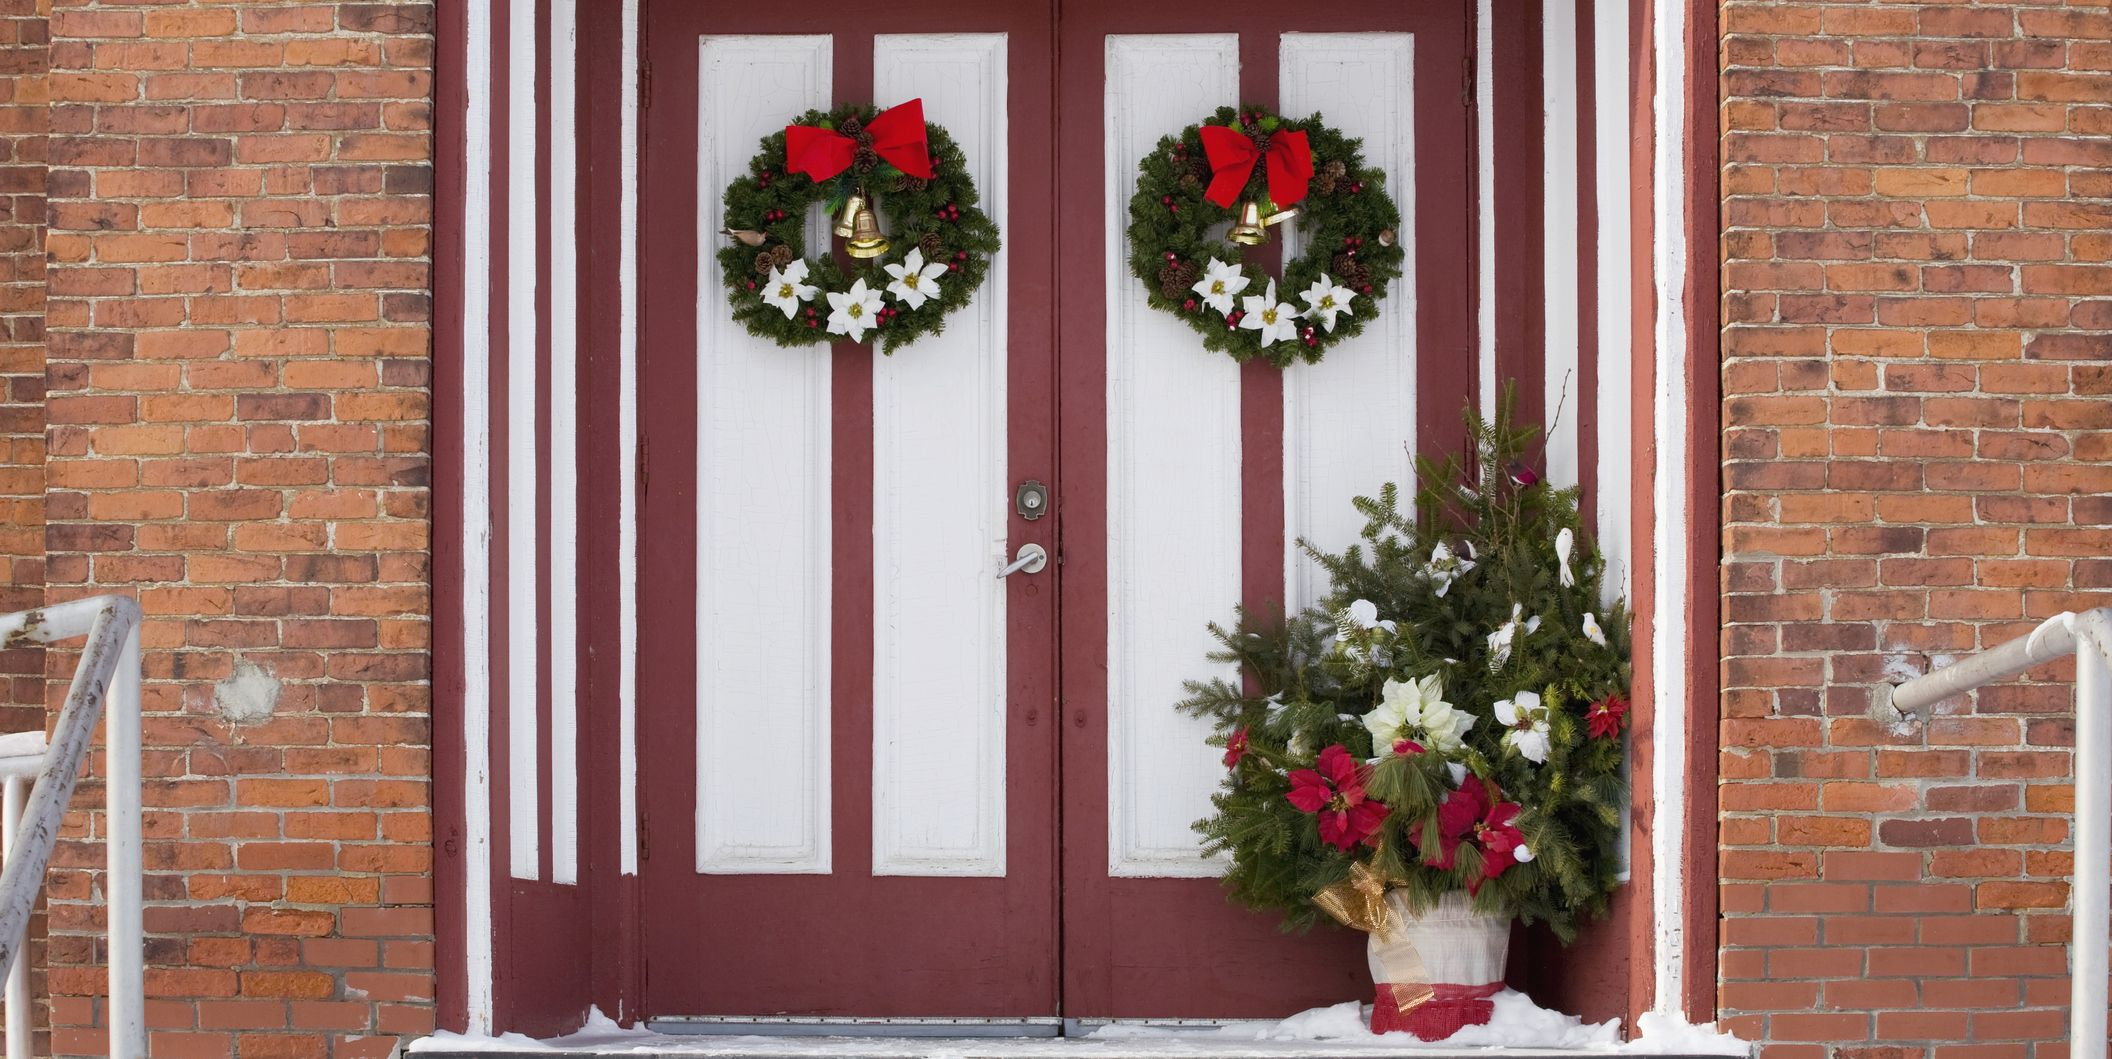 Doors and wreath